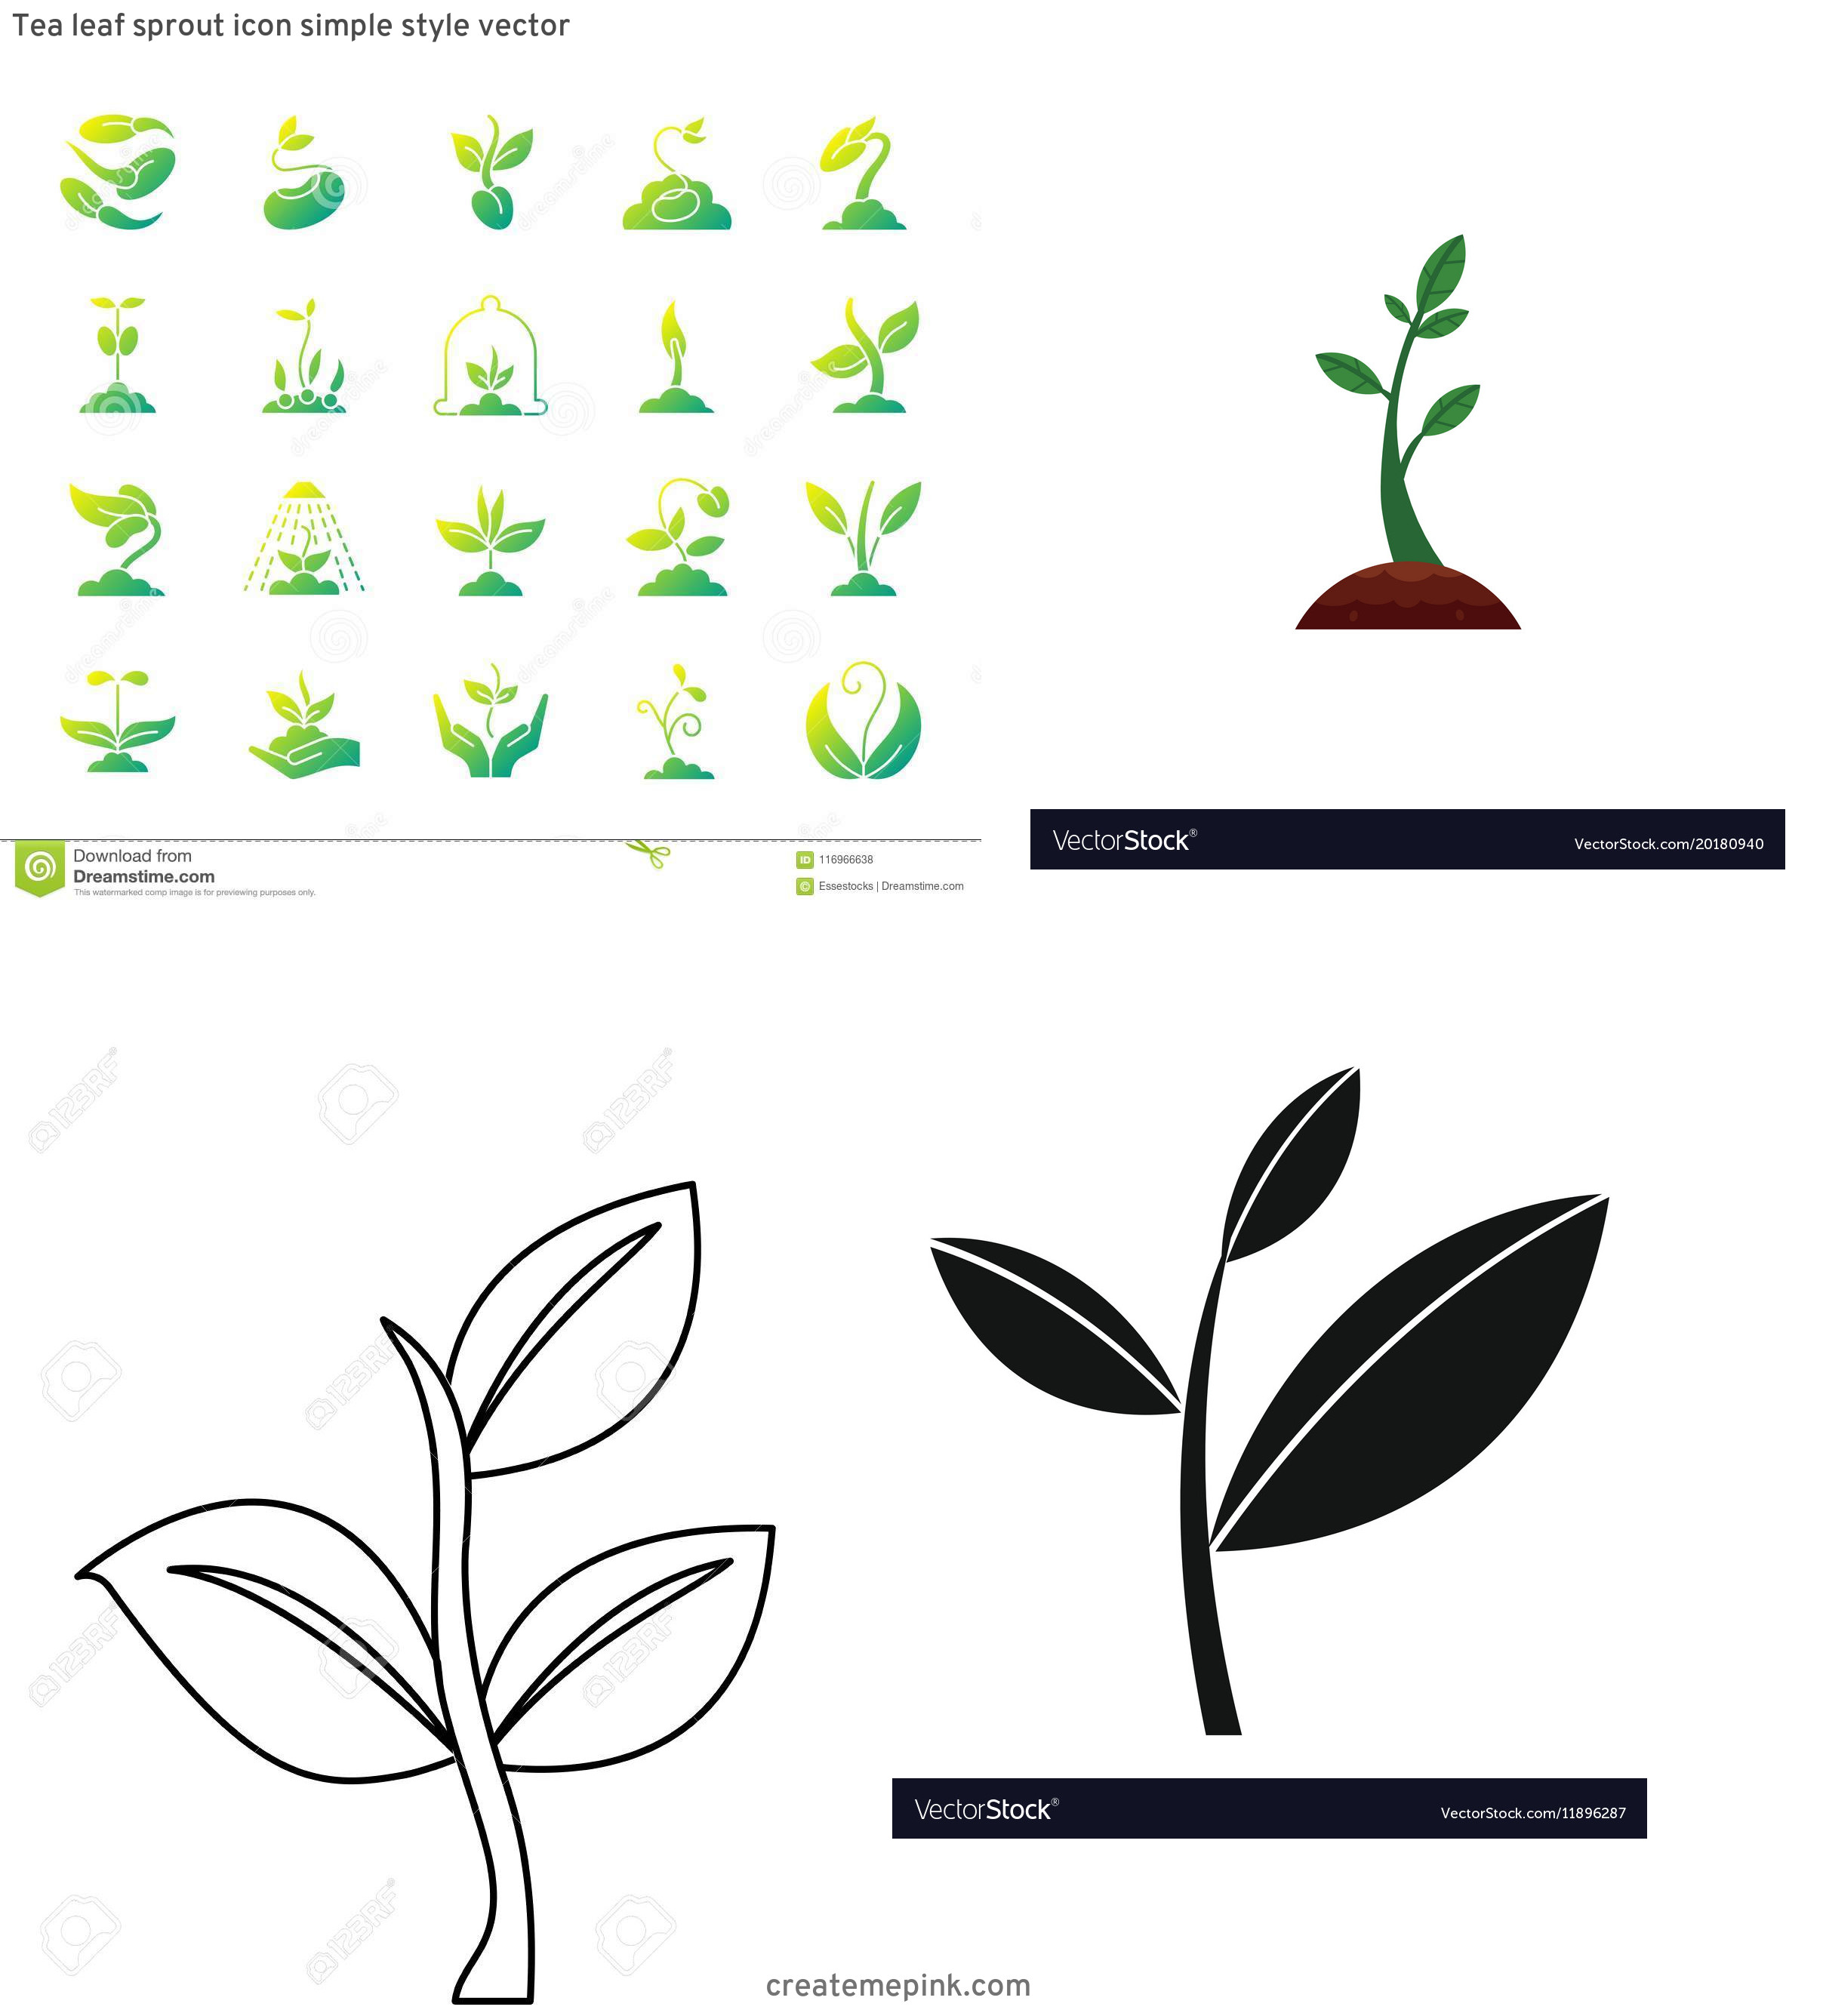 Sprout Icon Vector: Tea Leaf Sprout Icon Simple Style Vector